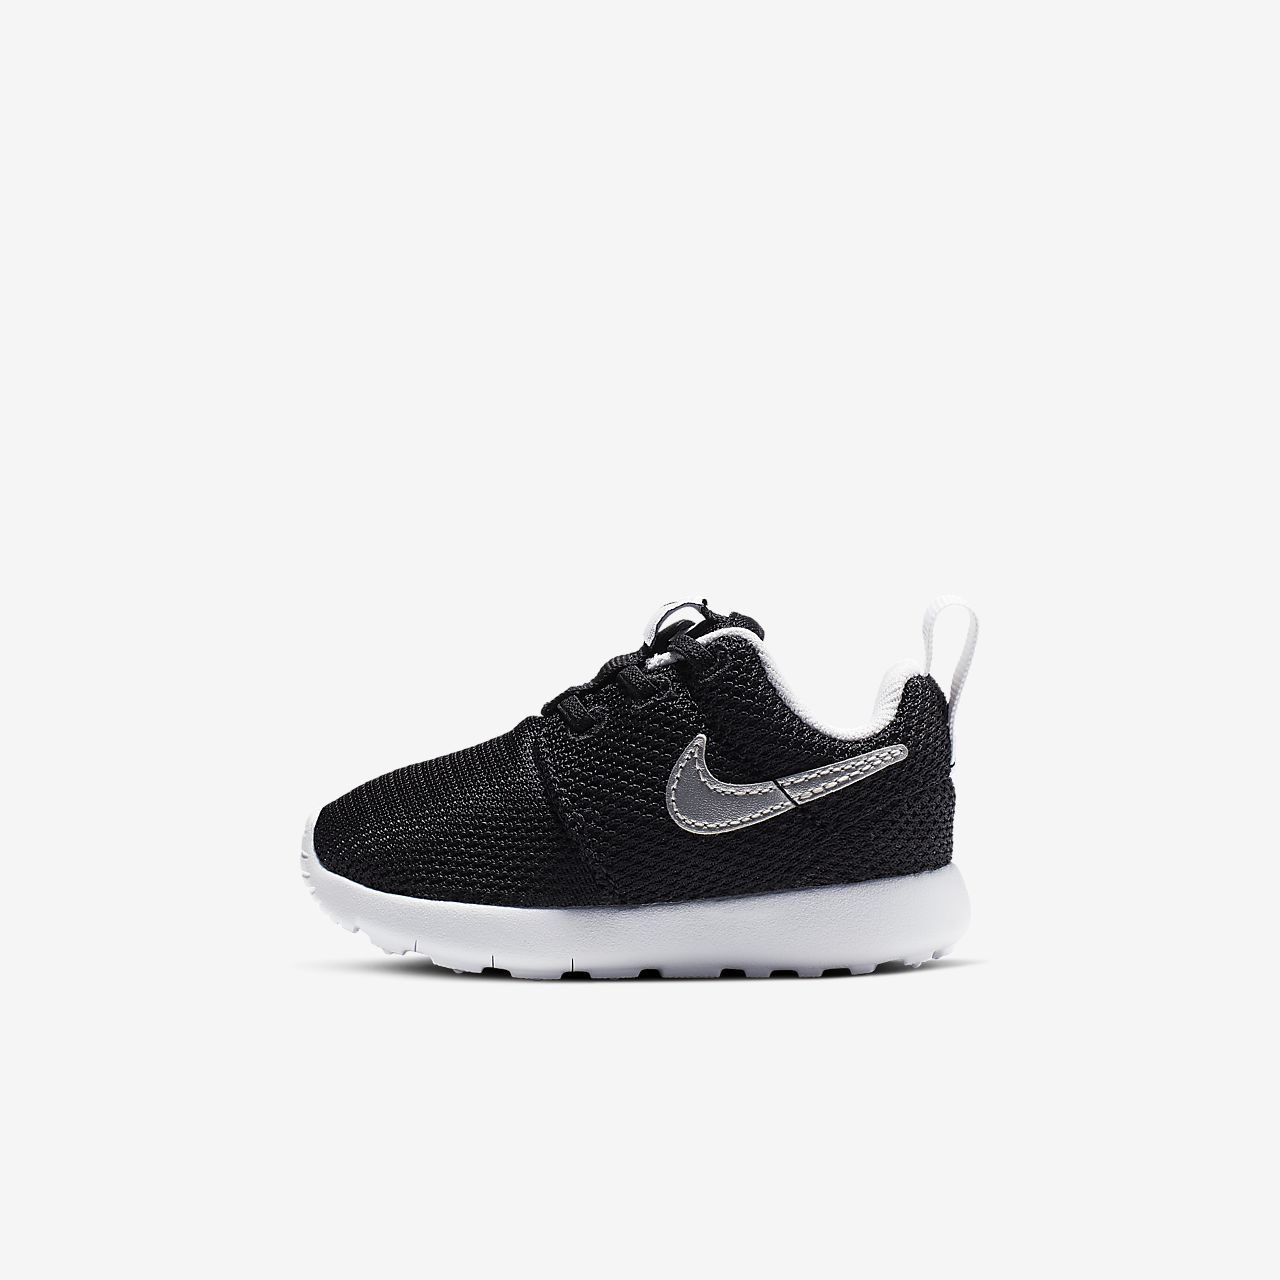 ... Nike Roshe One Infant/Toddler Shoe